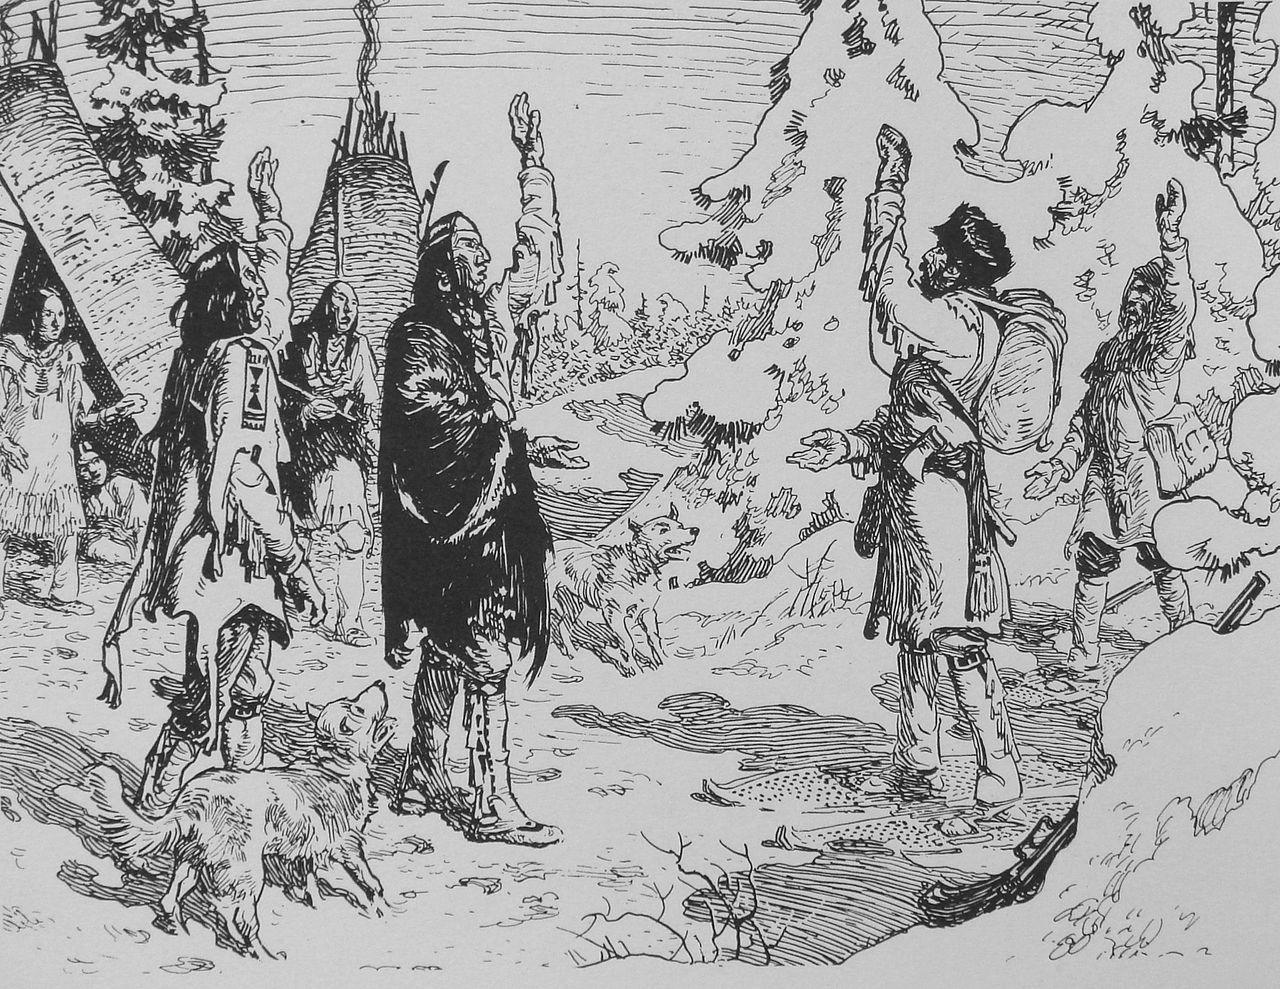 File:Arrival of Radisson in an Indian camp 1660 Charles